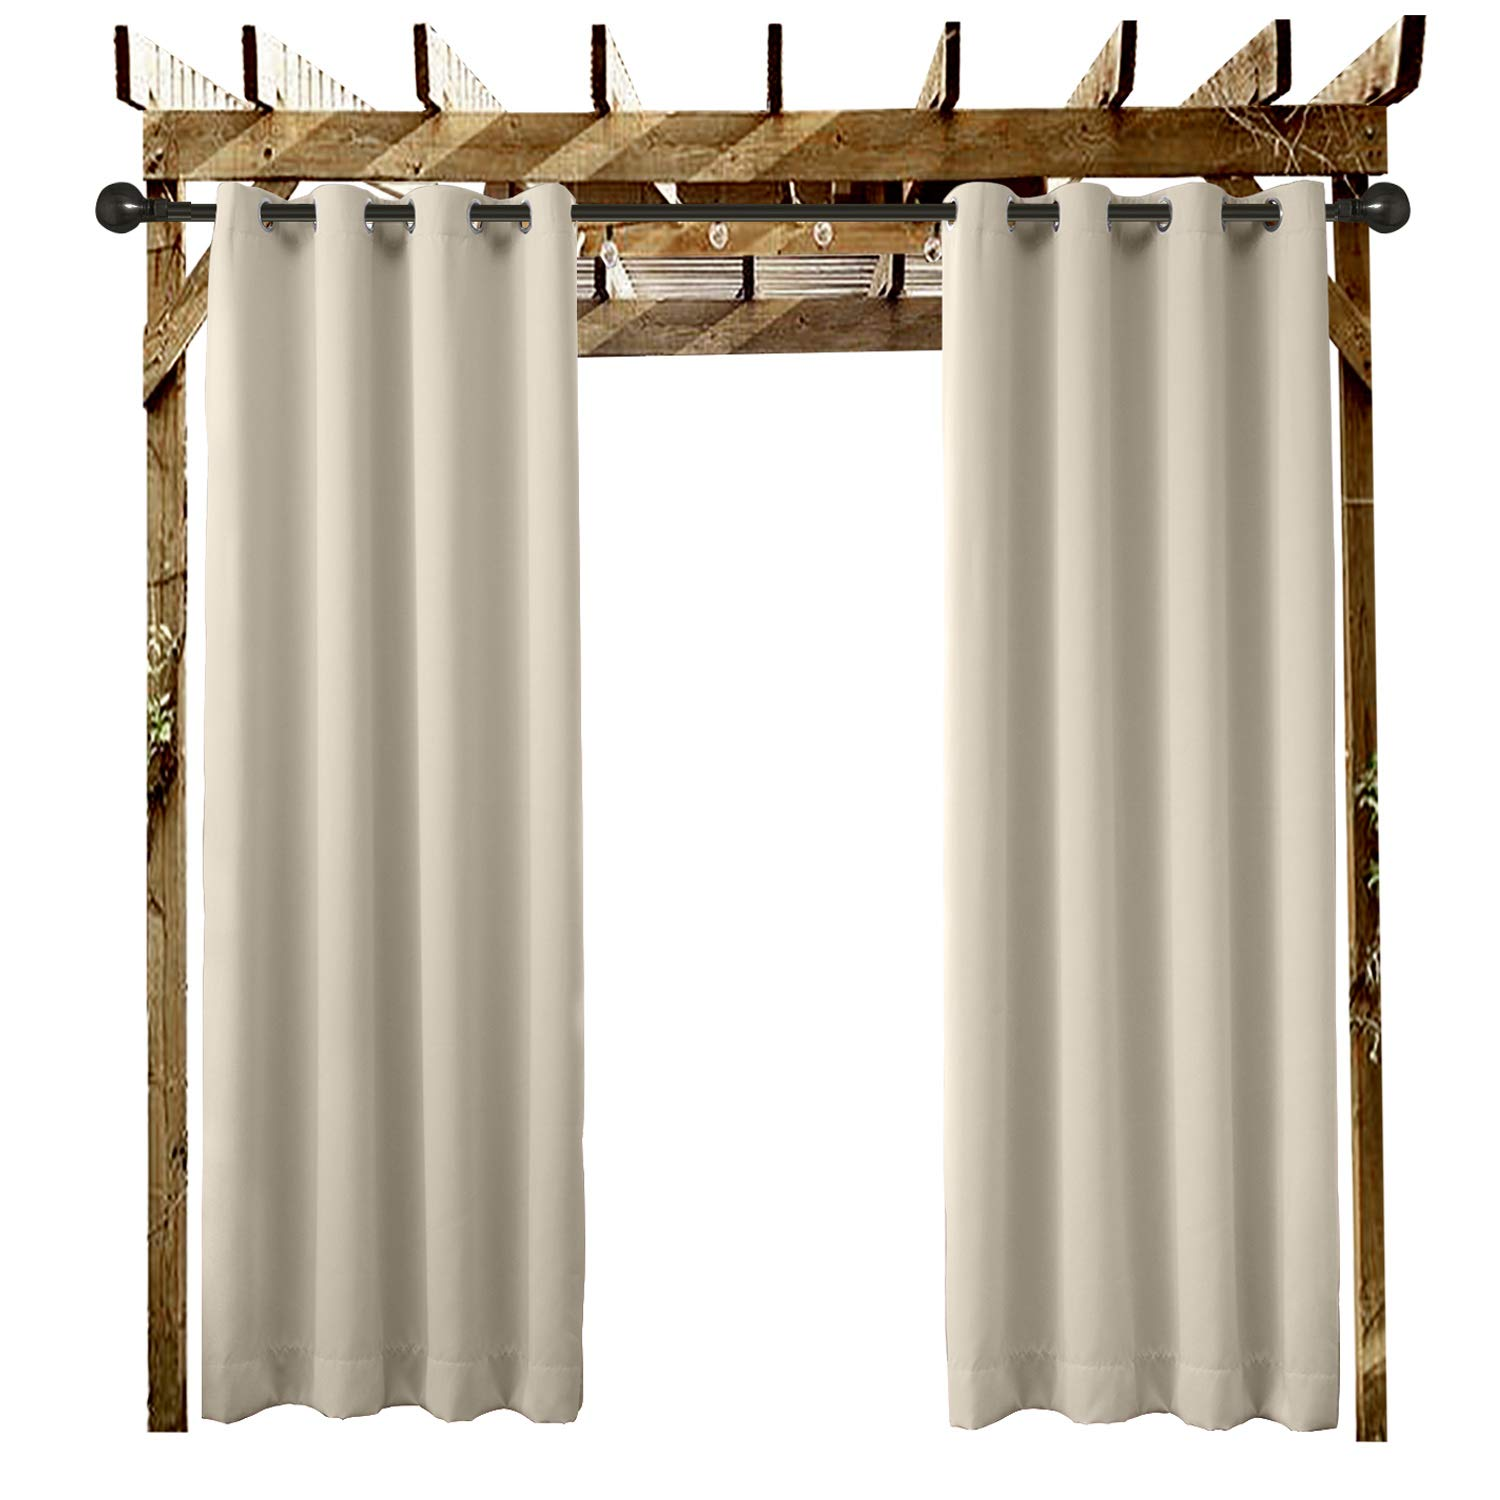 Amazon Com Chadmade Outdoor Curtain Beige Extra Wide 150 W X 96